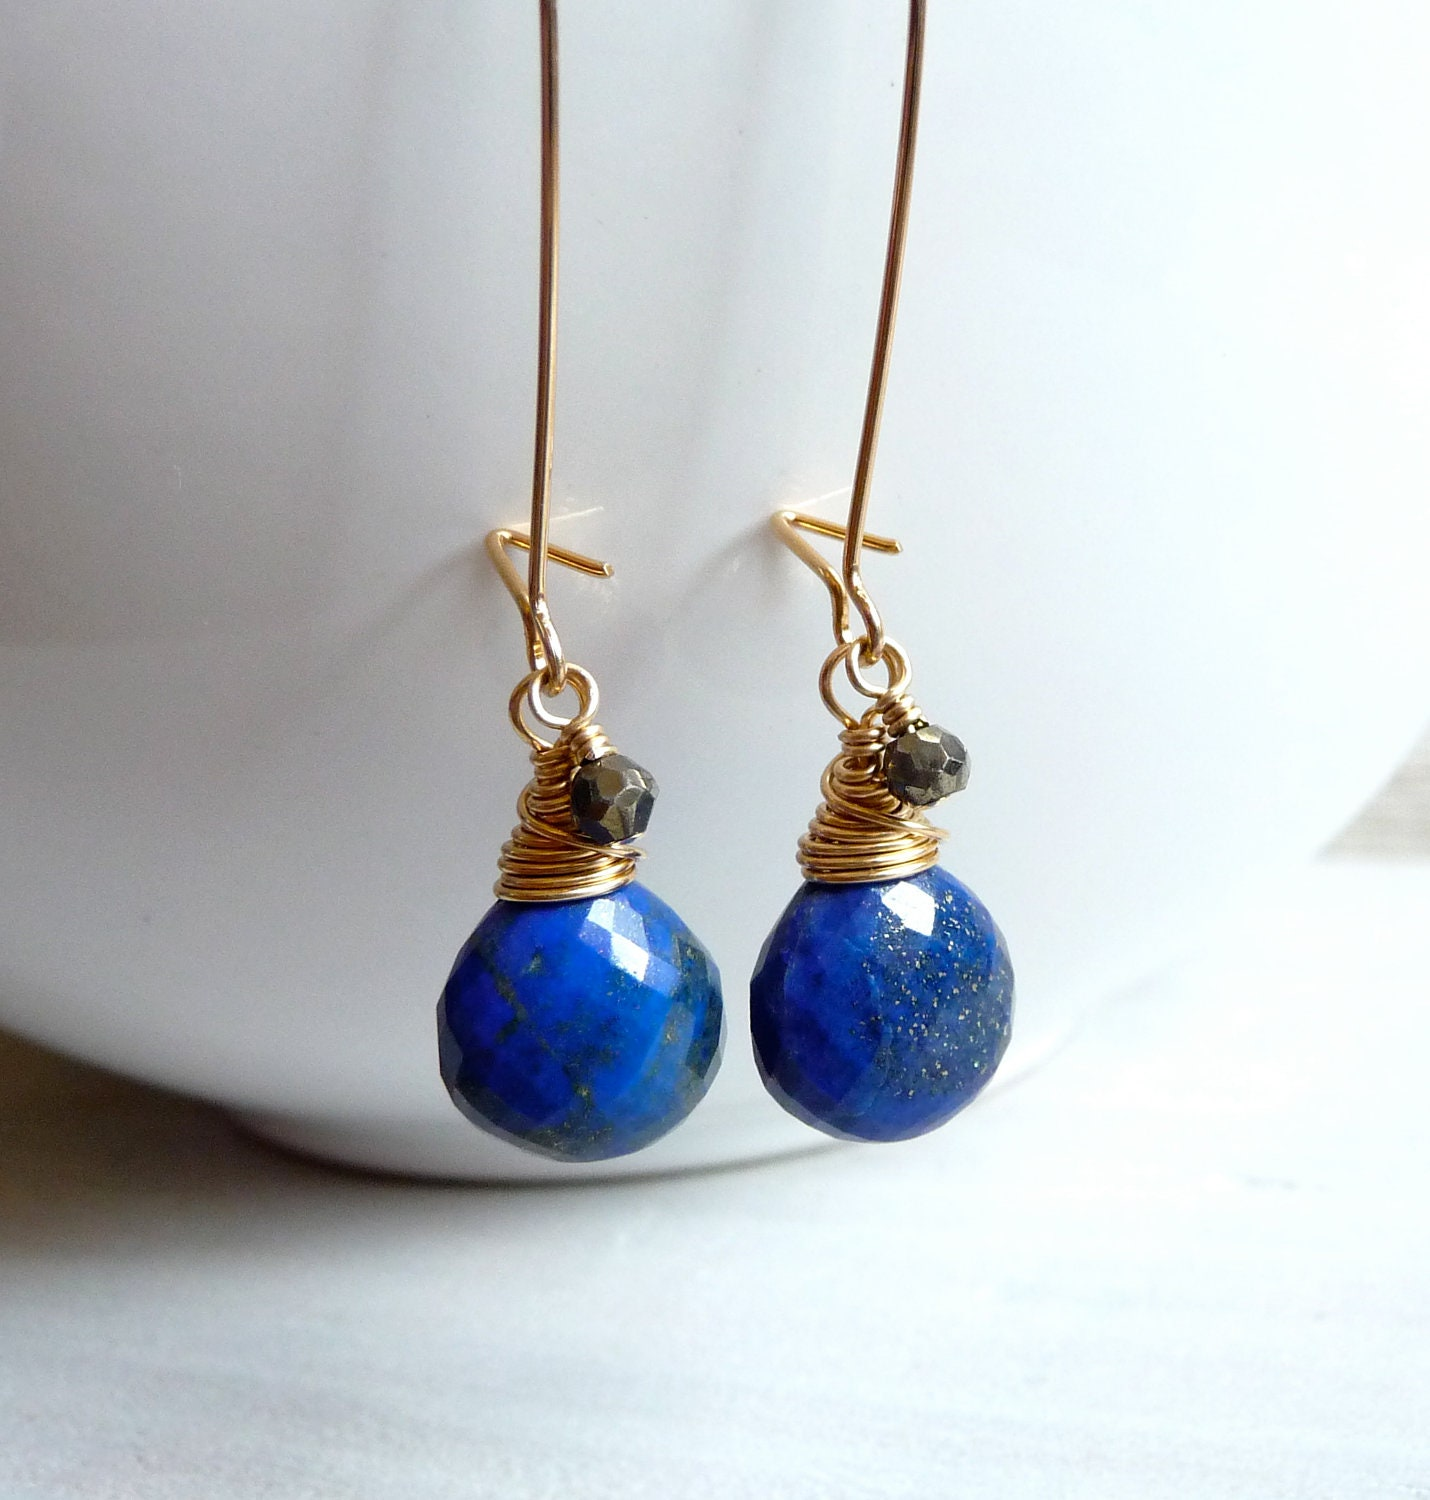 Lapis Lazuli Earrings, Pyrite Rondelles, Faceted Heart Briolette Earrings, Gold Filled Earrings, One of A Kind - karinagracejewelry